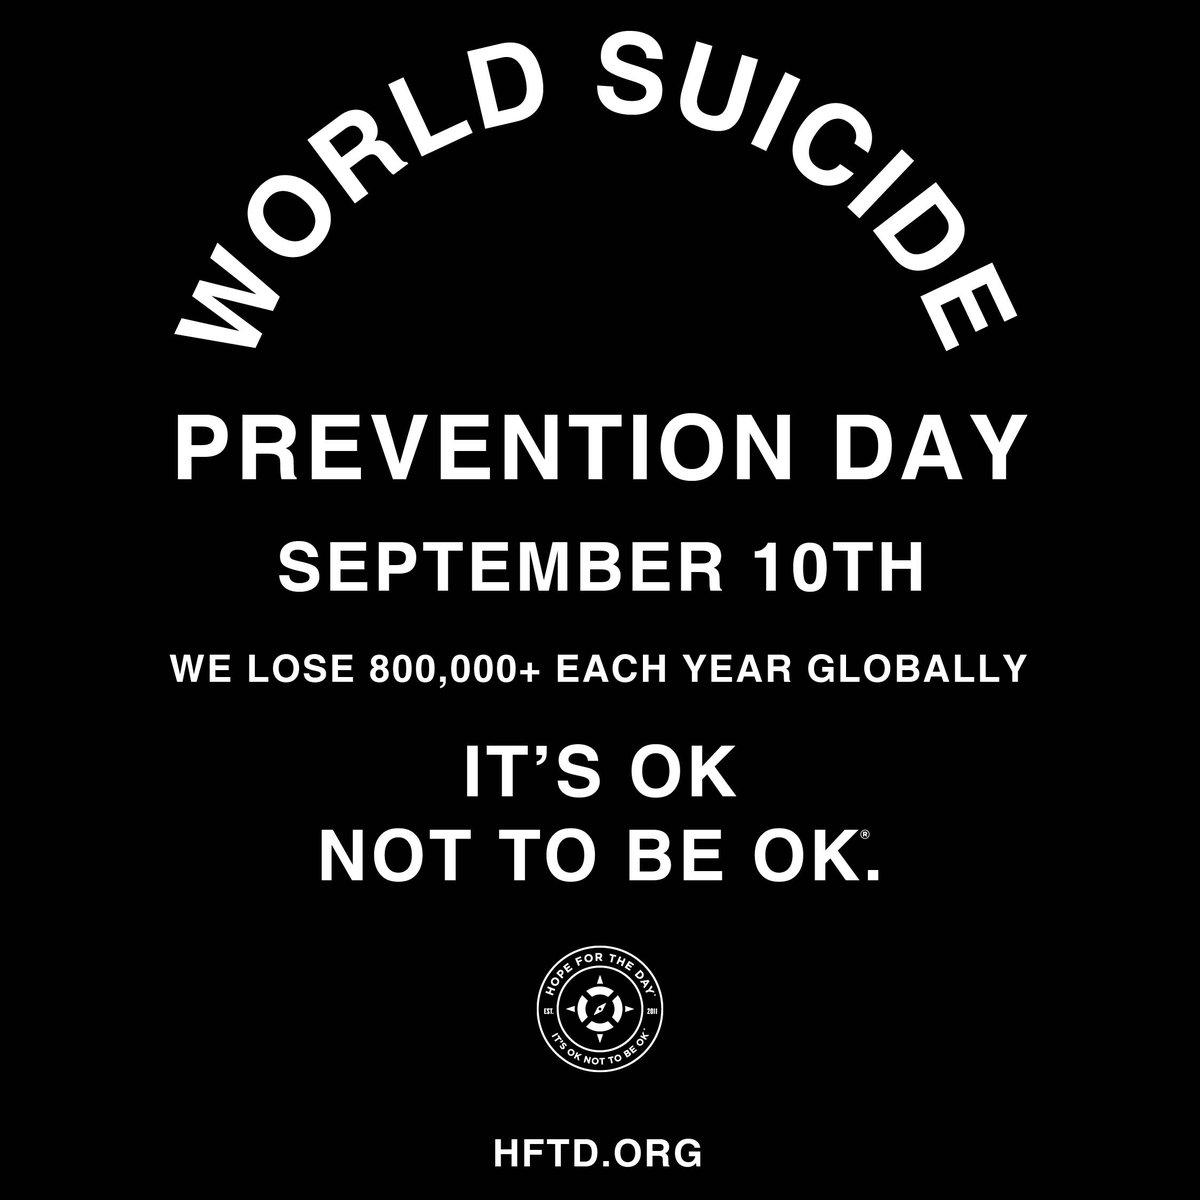 TOMORROW is WORLD SUICIDE PREVENTION DAY. We lose 800,000 people each year globally, and suicide is a preventable mental health crisis! SWIPE THRU to see 3 ways you can take action with us right NOW. #hopefortheday #itsoknottobeok https://t.co/sz5frc2Ahx